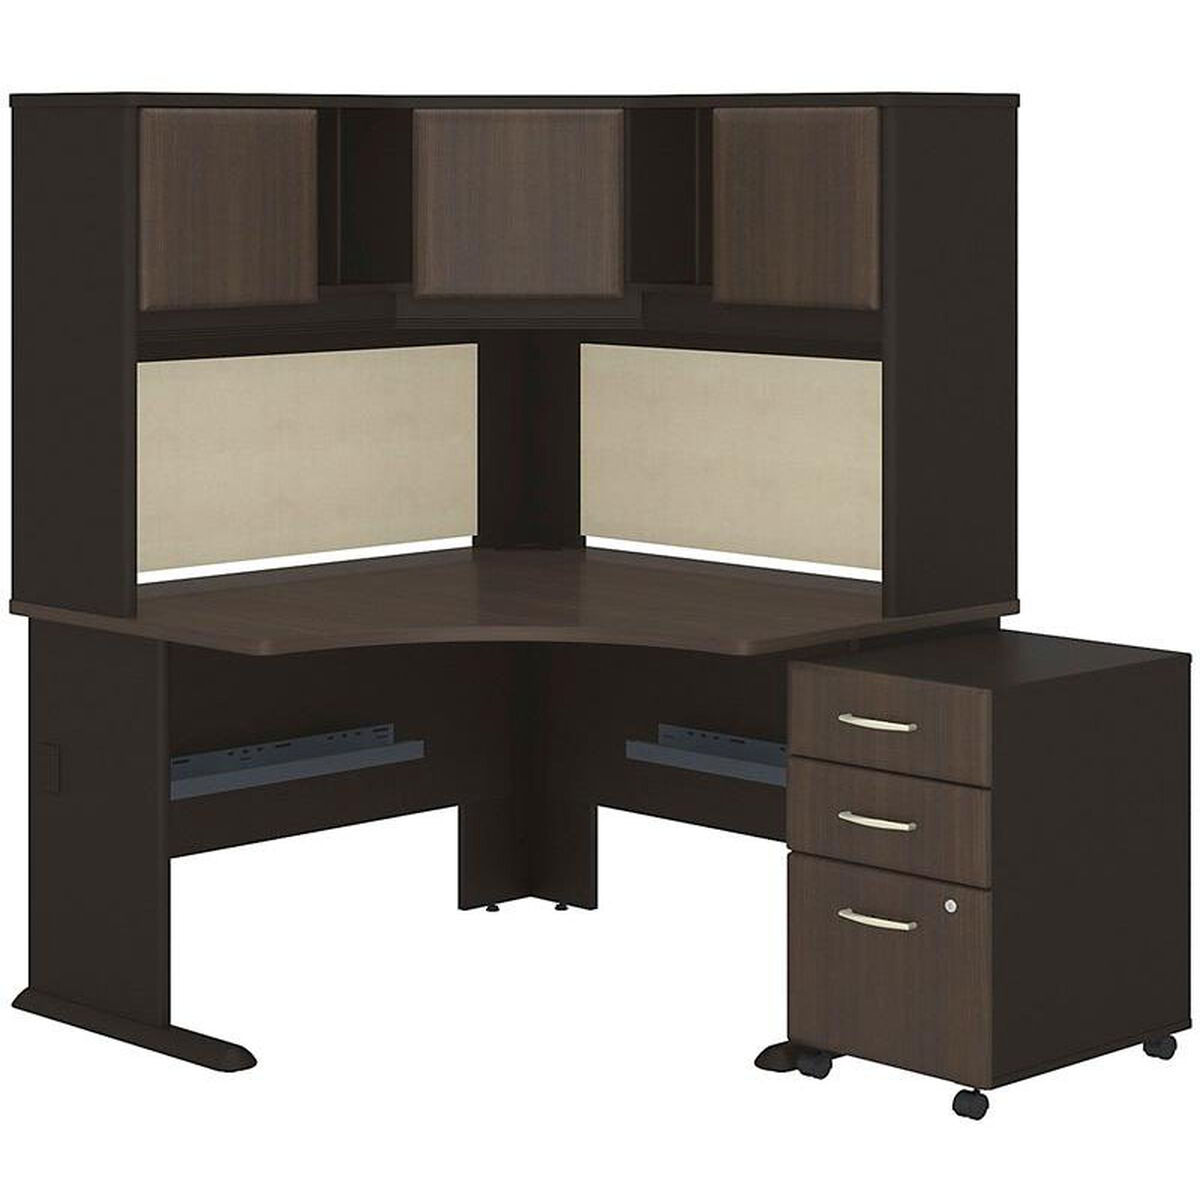 Our Series A Collection 48 W X D Corner Desk With